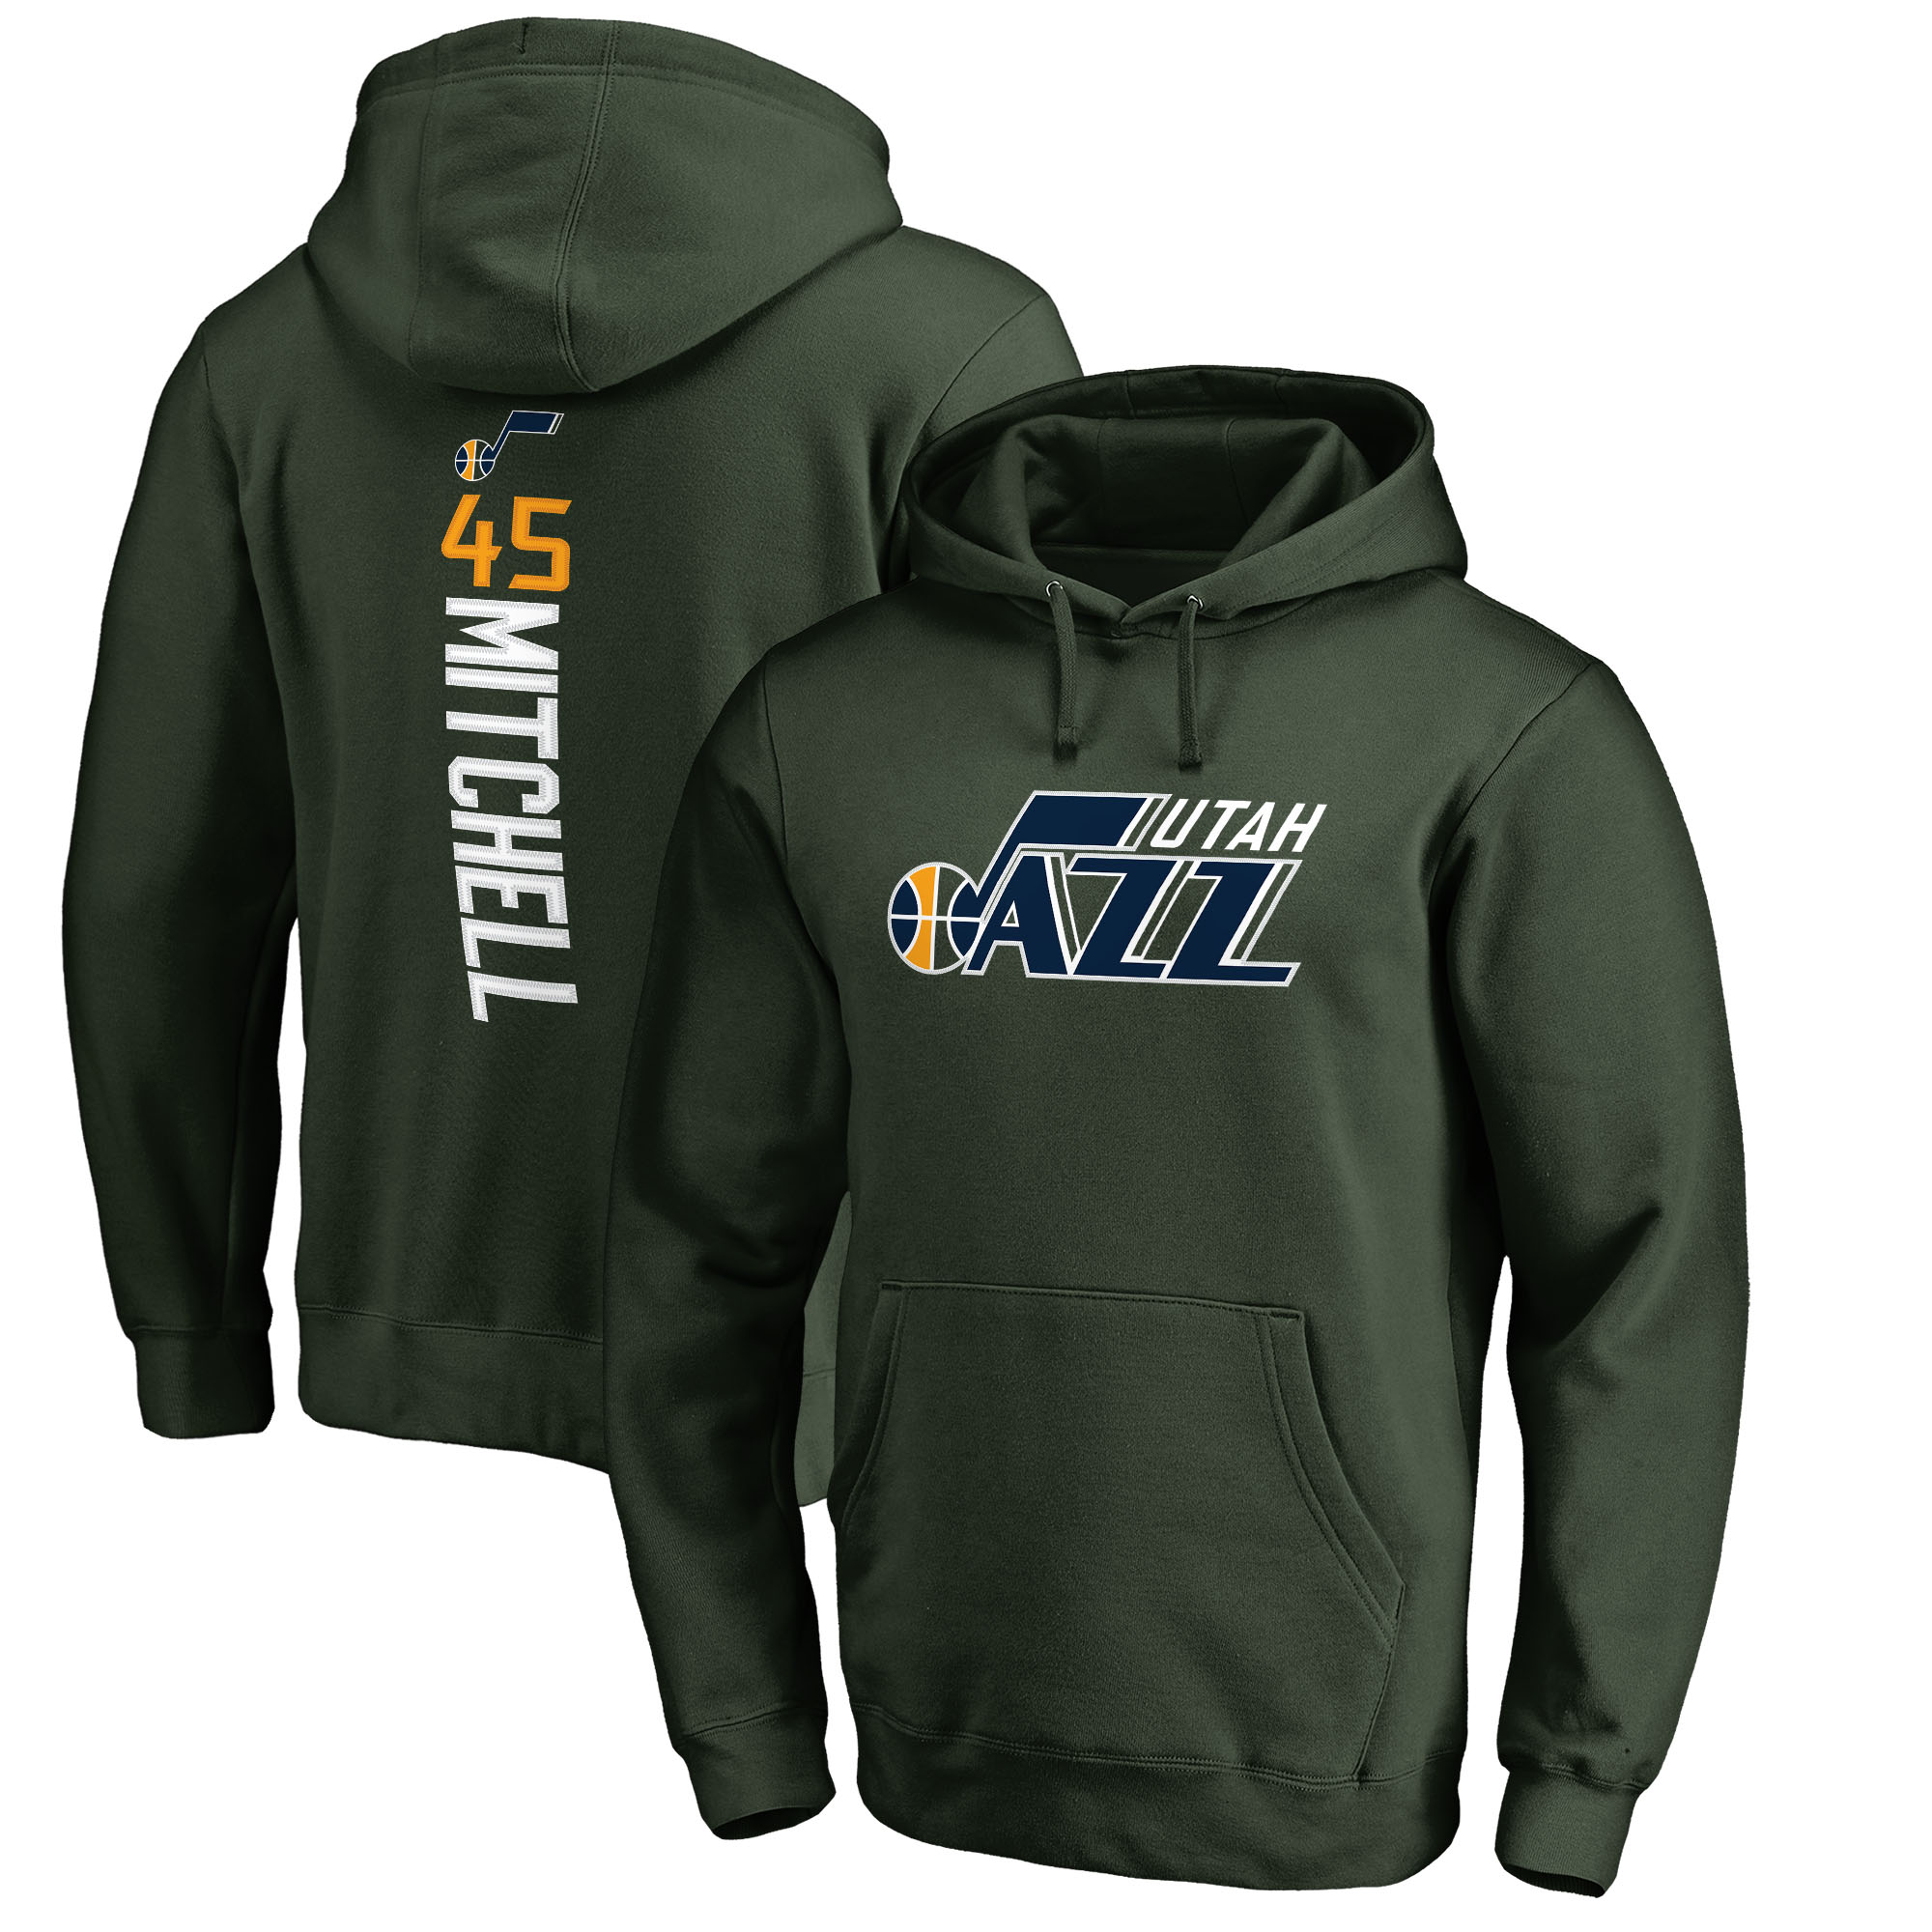 Donovan Mitchell Utah Jazz Fanatics Branded Team Backer Name & Number Pullover Hoodie - Green